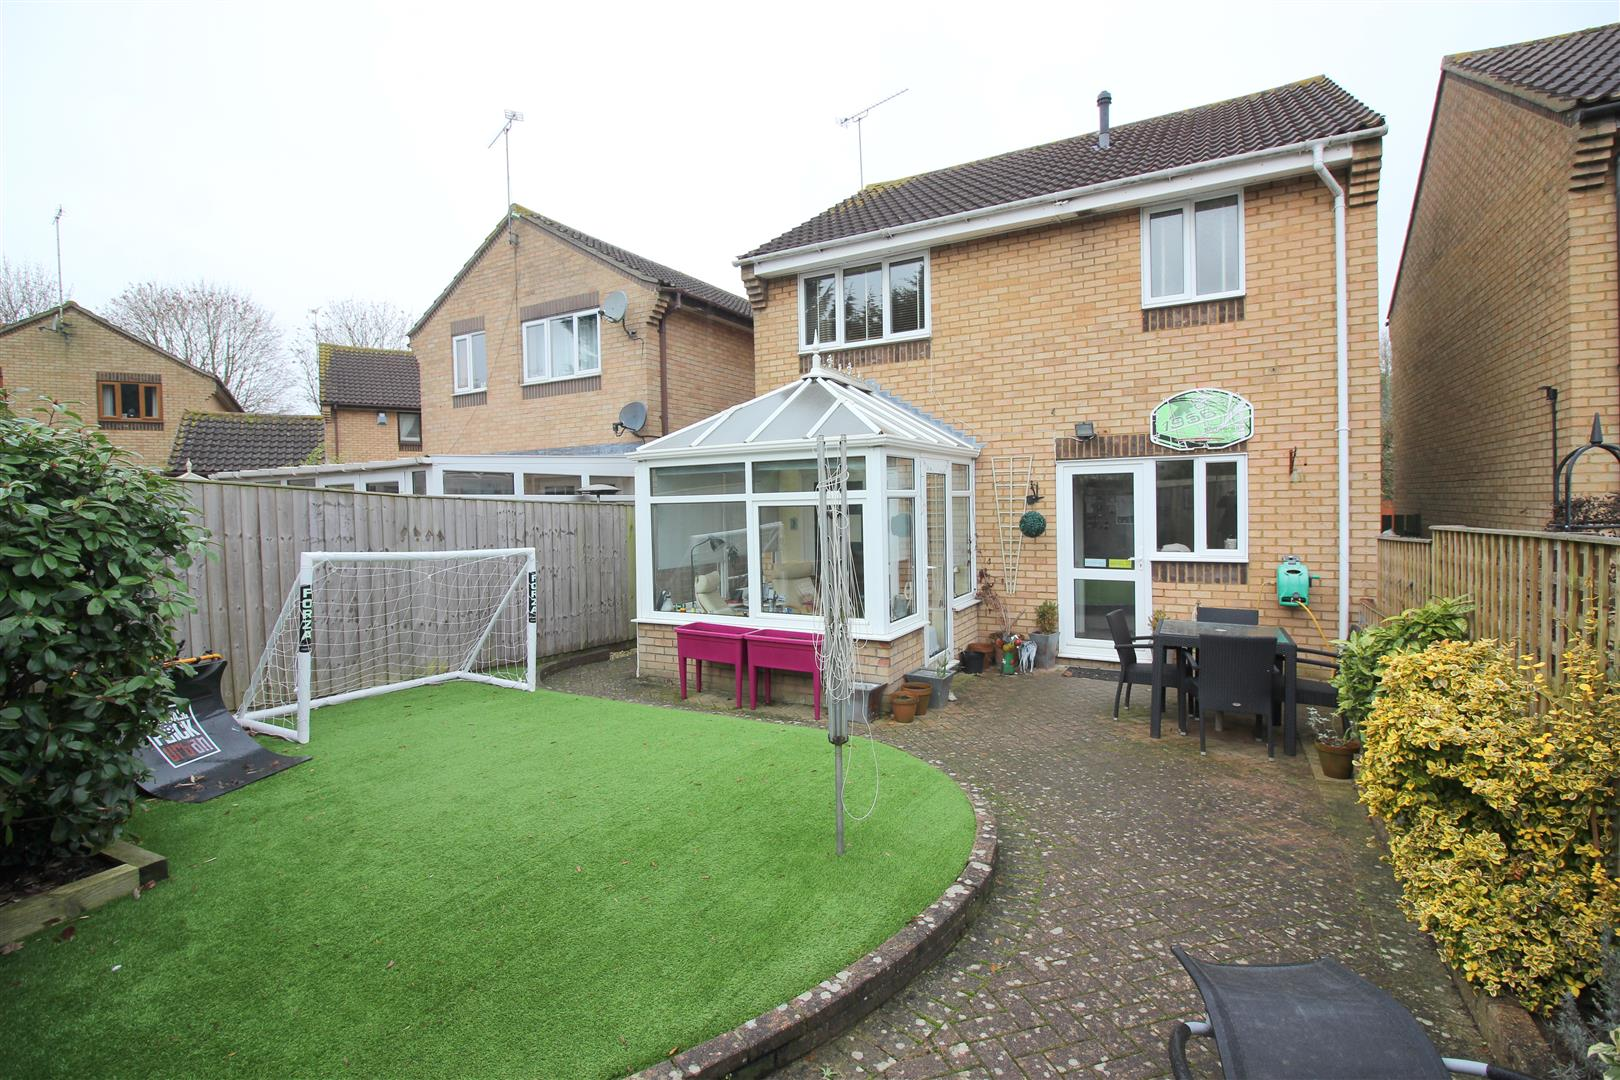 3 Bedrooms Property for sale in Boundary Close, Upper Stratton, Swindon